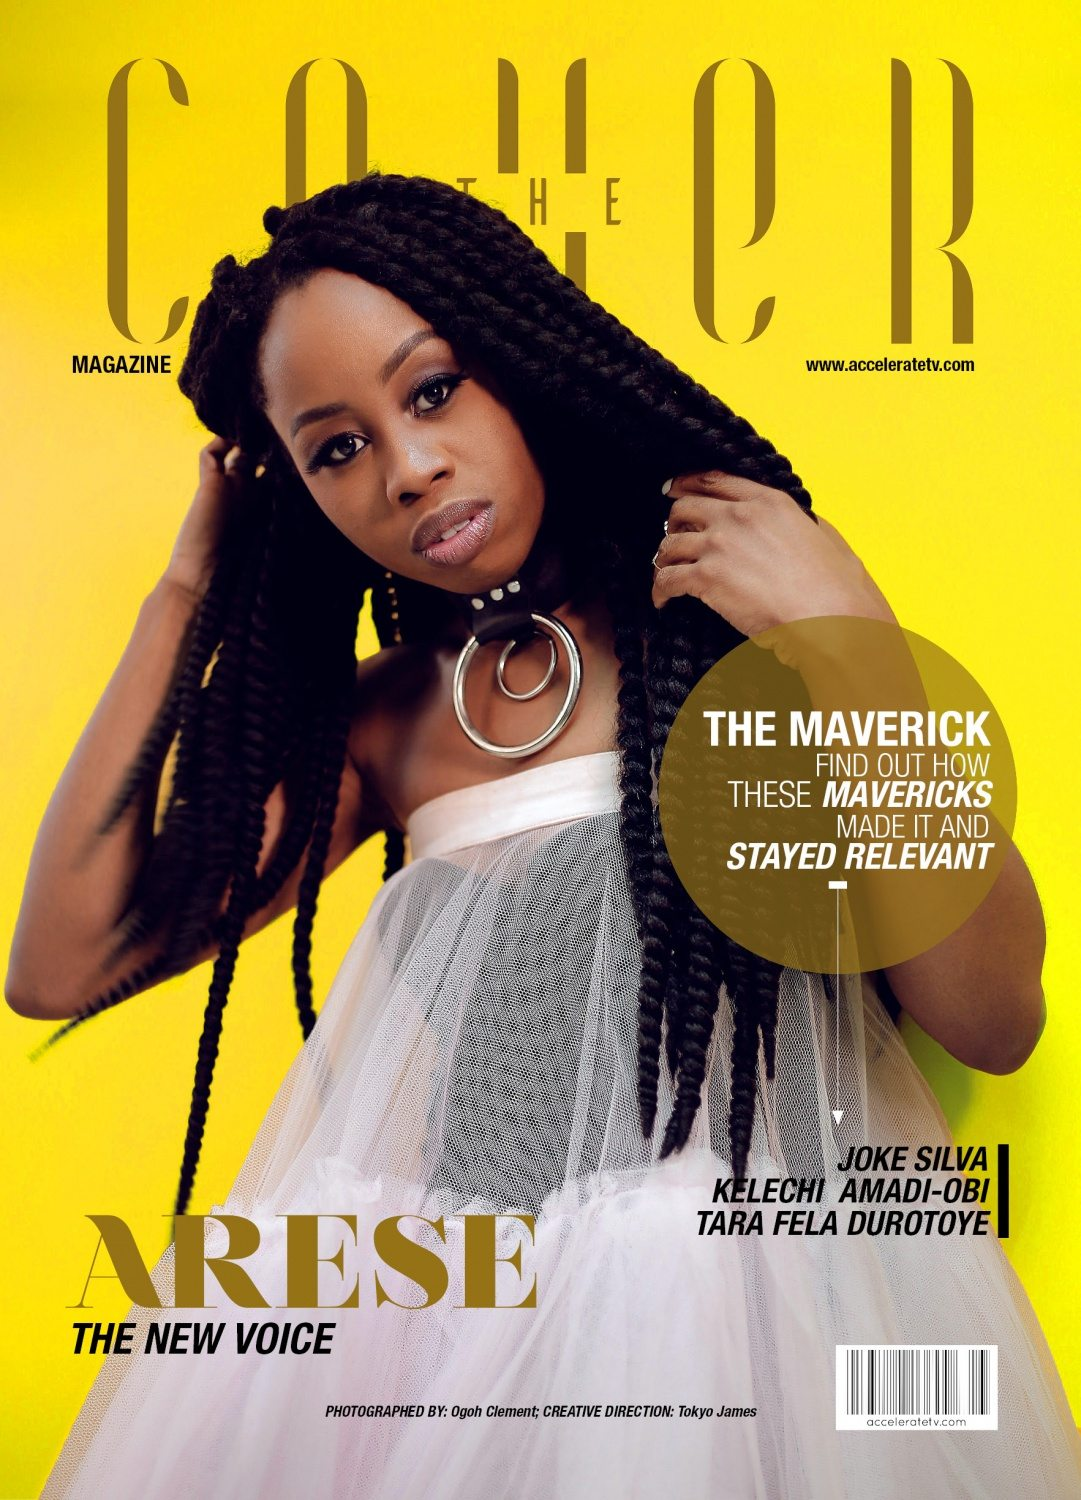 The Cover Arese